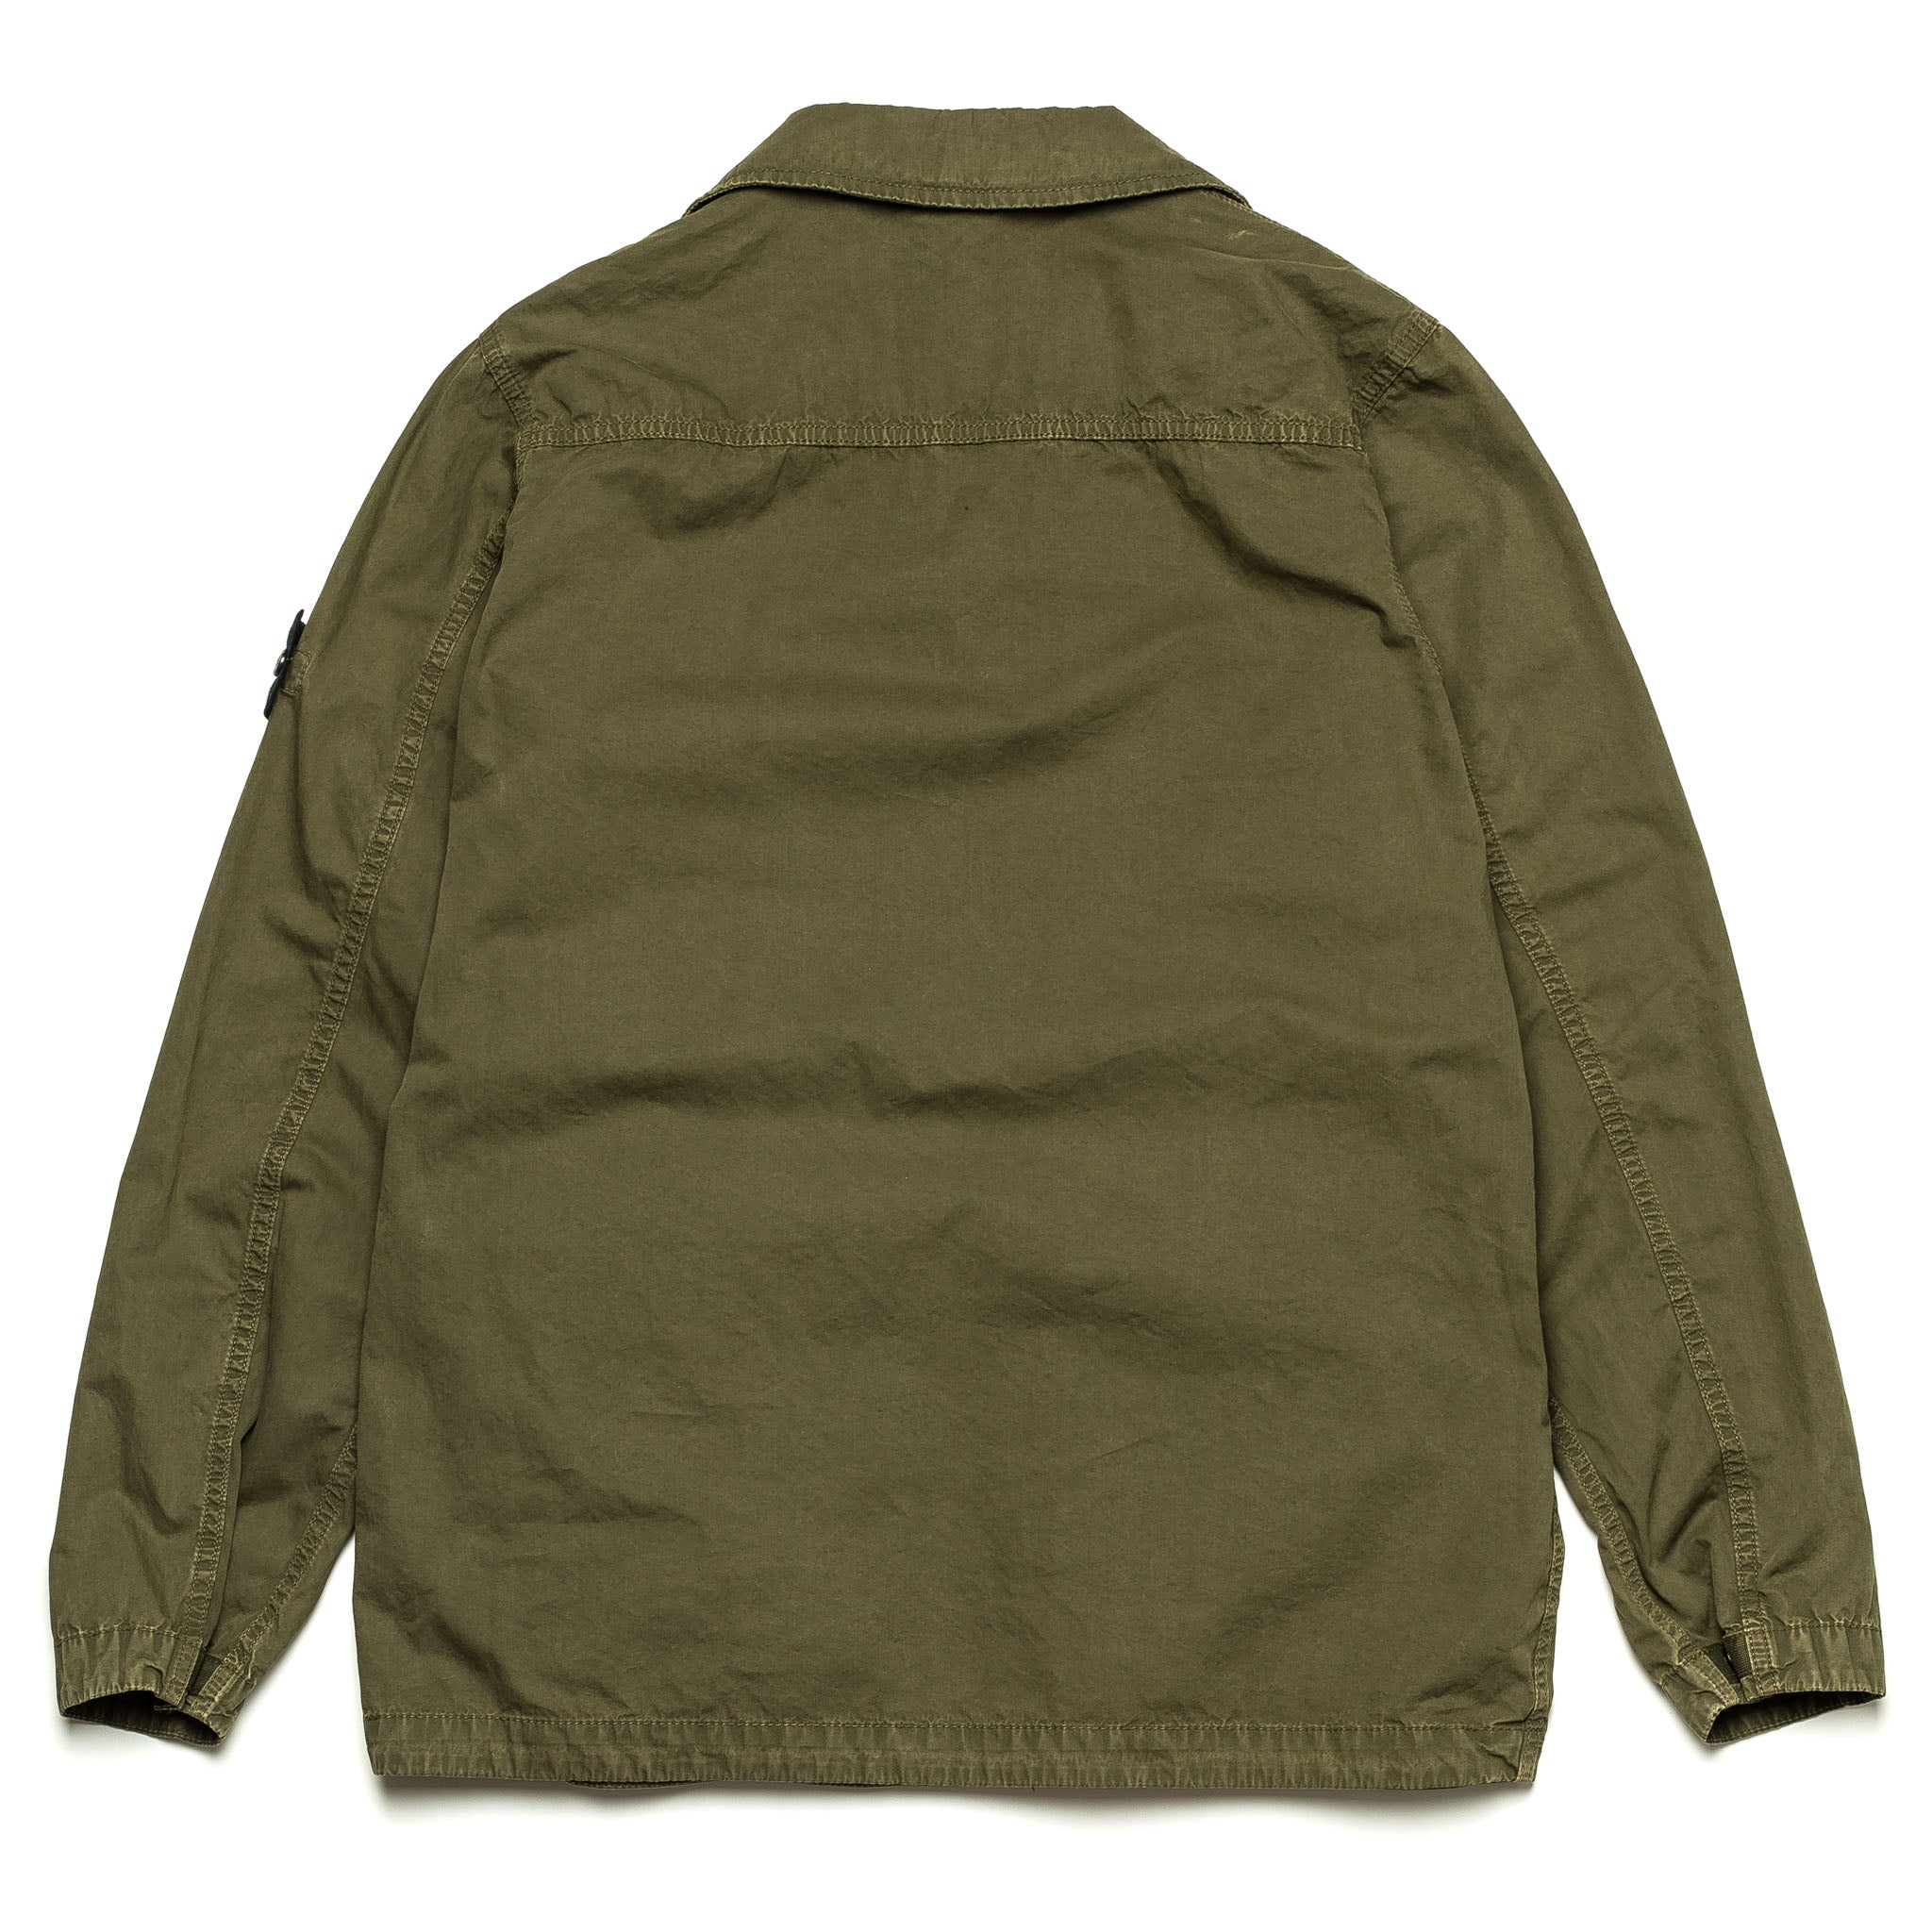 SI Tela Overshirt Jacket 7415439WN Olive